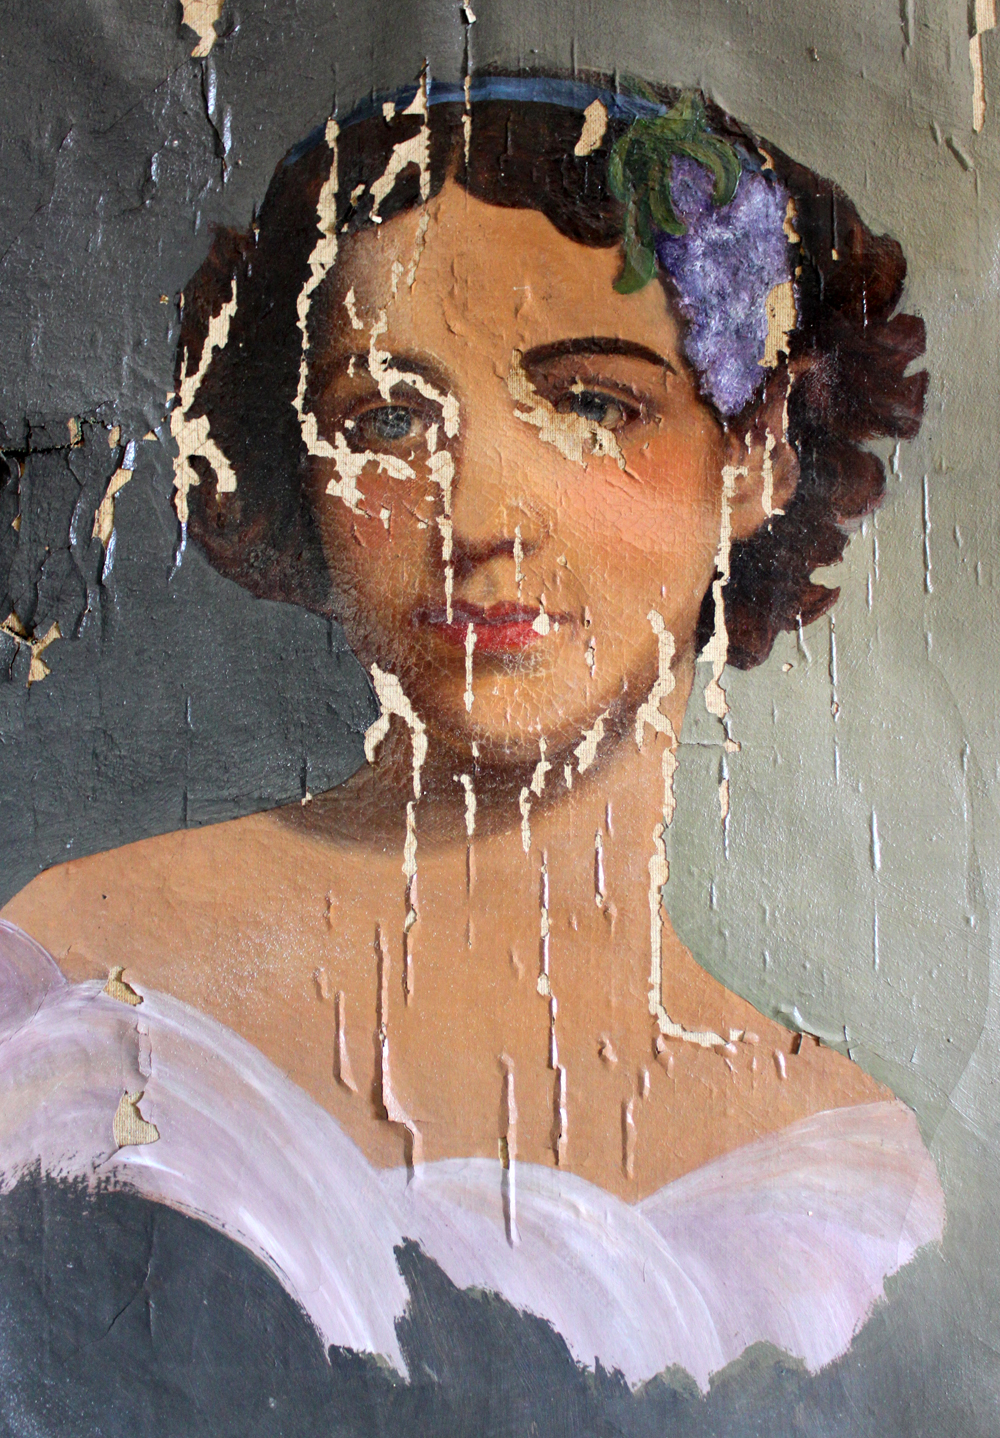 This beautiful portrait in the process of deterioration hangs in my office today. Probably done by an itinerant portrait painter in the 1800's. I love the way he spent his time capturing her face while doing the rest in quick and lively brushstrokes. This woman's portrait sat in a barn for several decades fading into obscurity until her memory was resurrected for at least as long as the paint holds to the canvas.